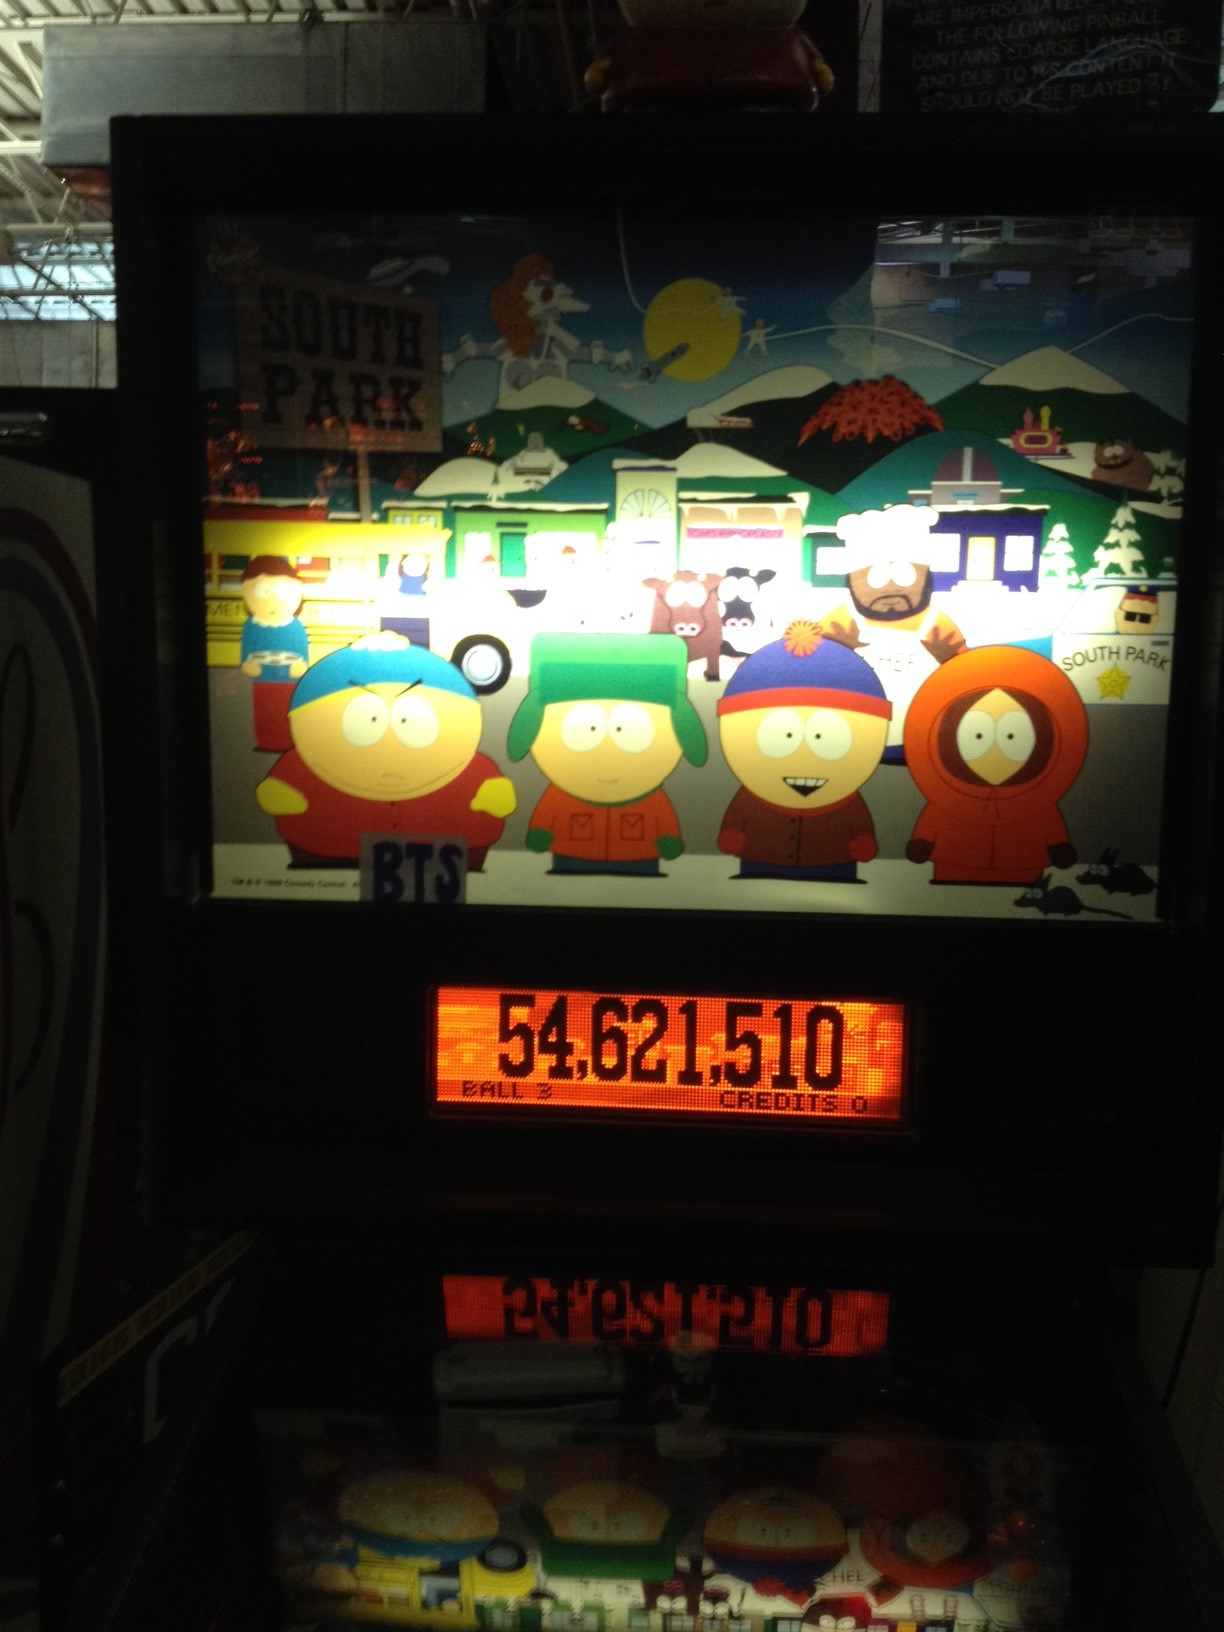 South Park 54,621,510 points